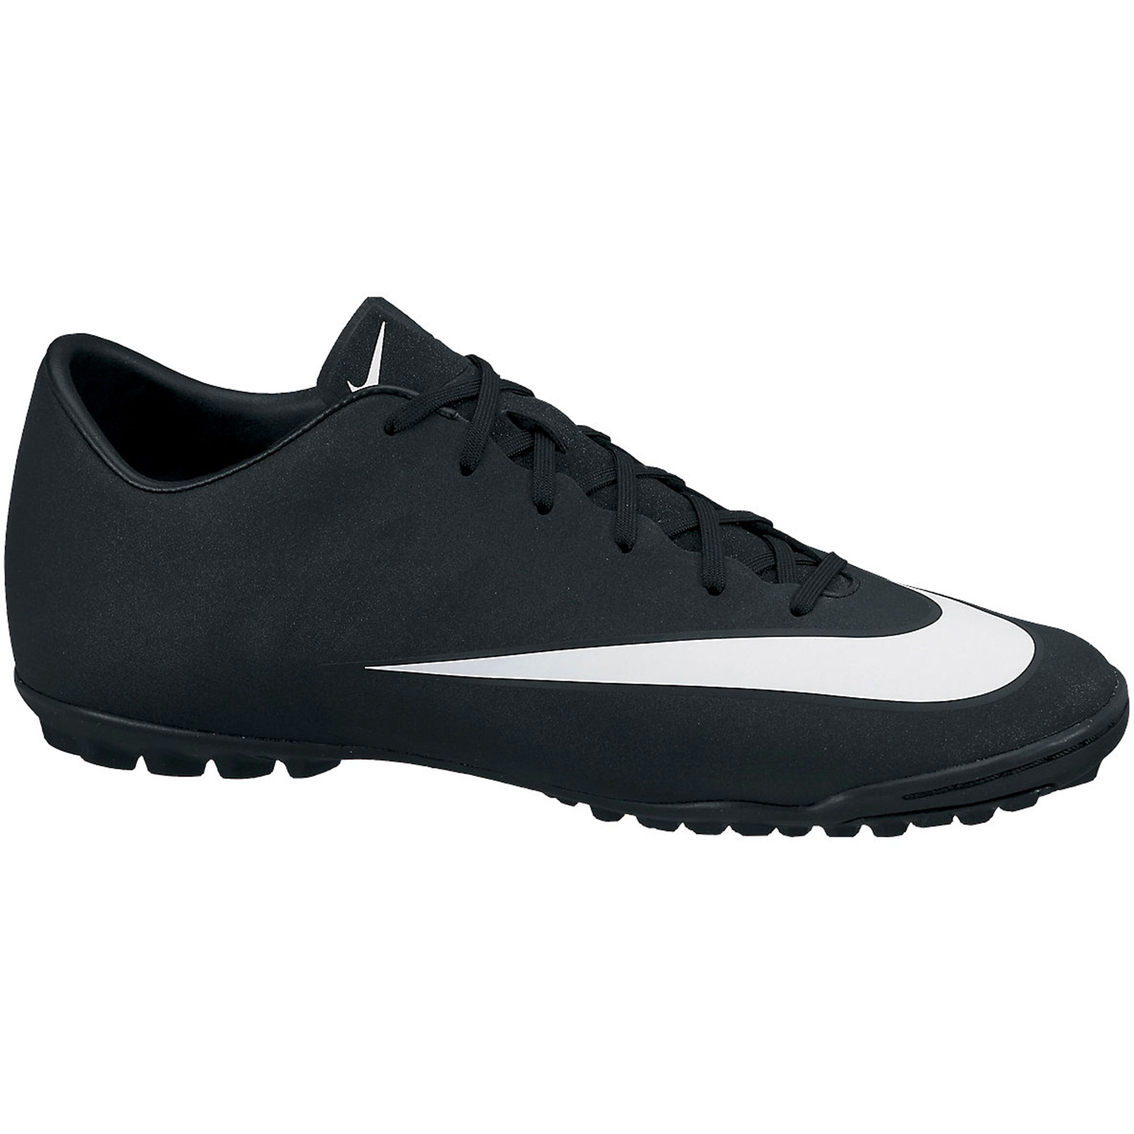 8a5a8dae12d4 Nike Men s Mercurial Victory V Cr Tf Artificial Turf Soccer Shoes ...